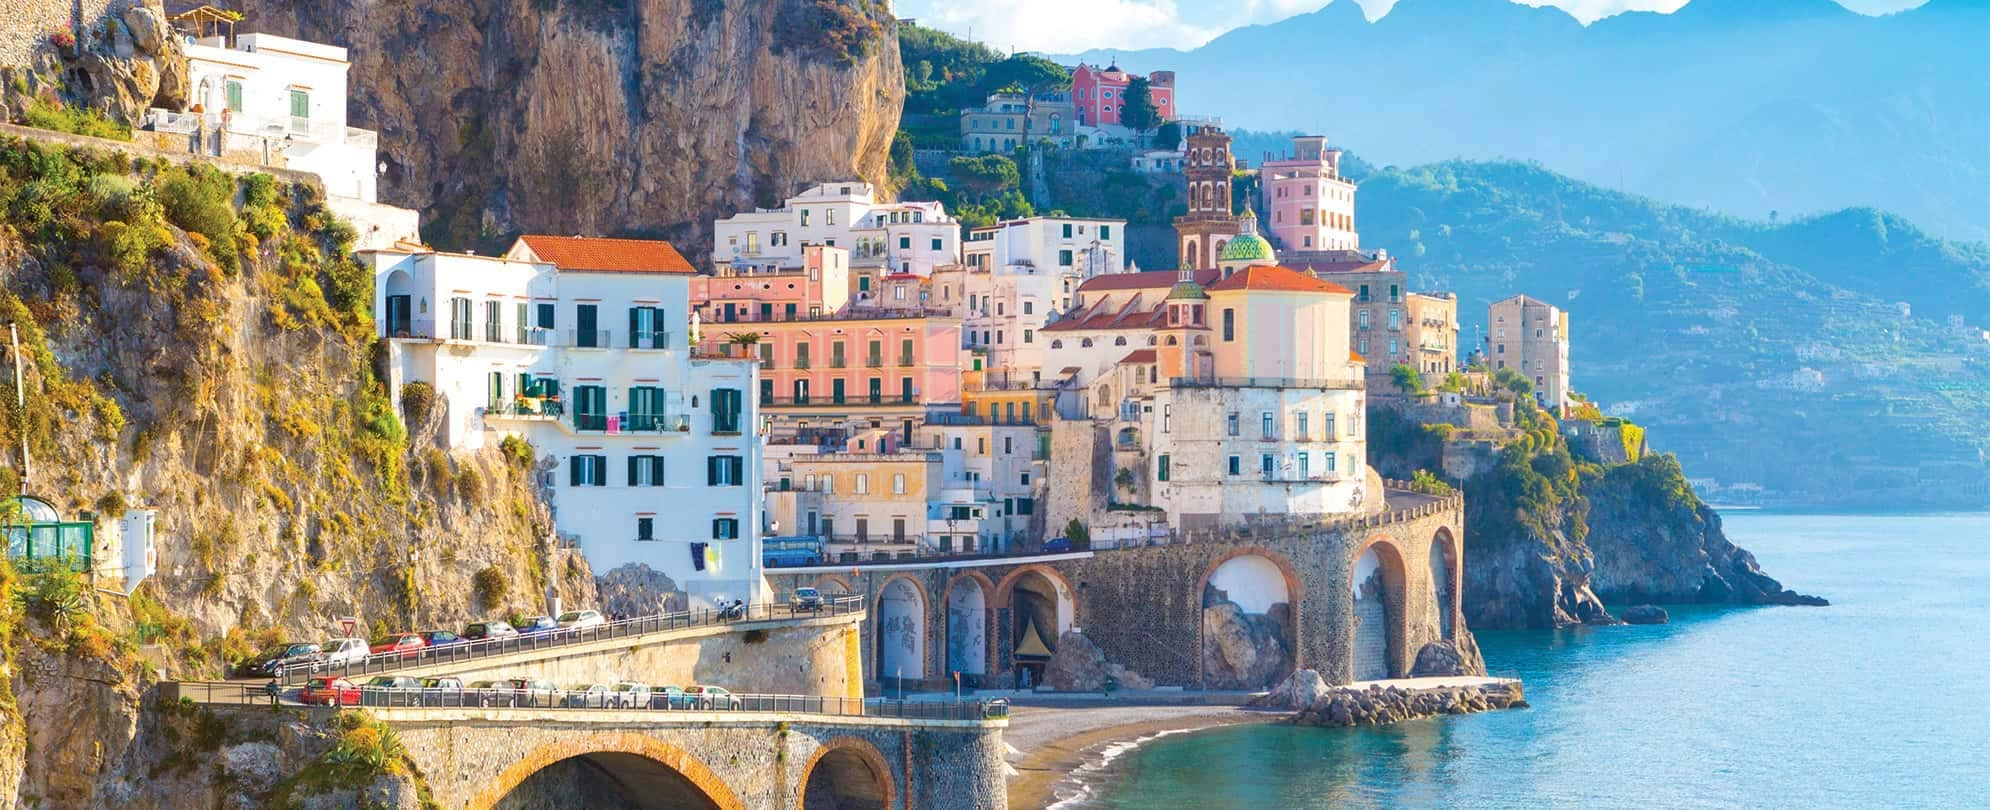 Italy's Amalfi Coast, with colorful buildings and roadway built into the waterfront mountainside.